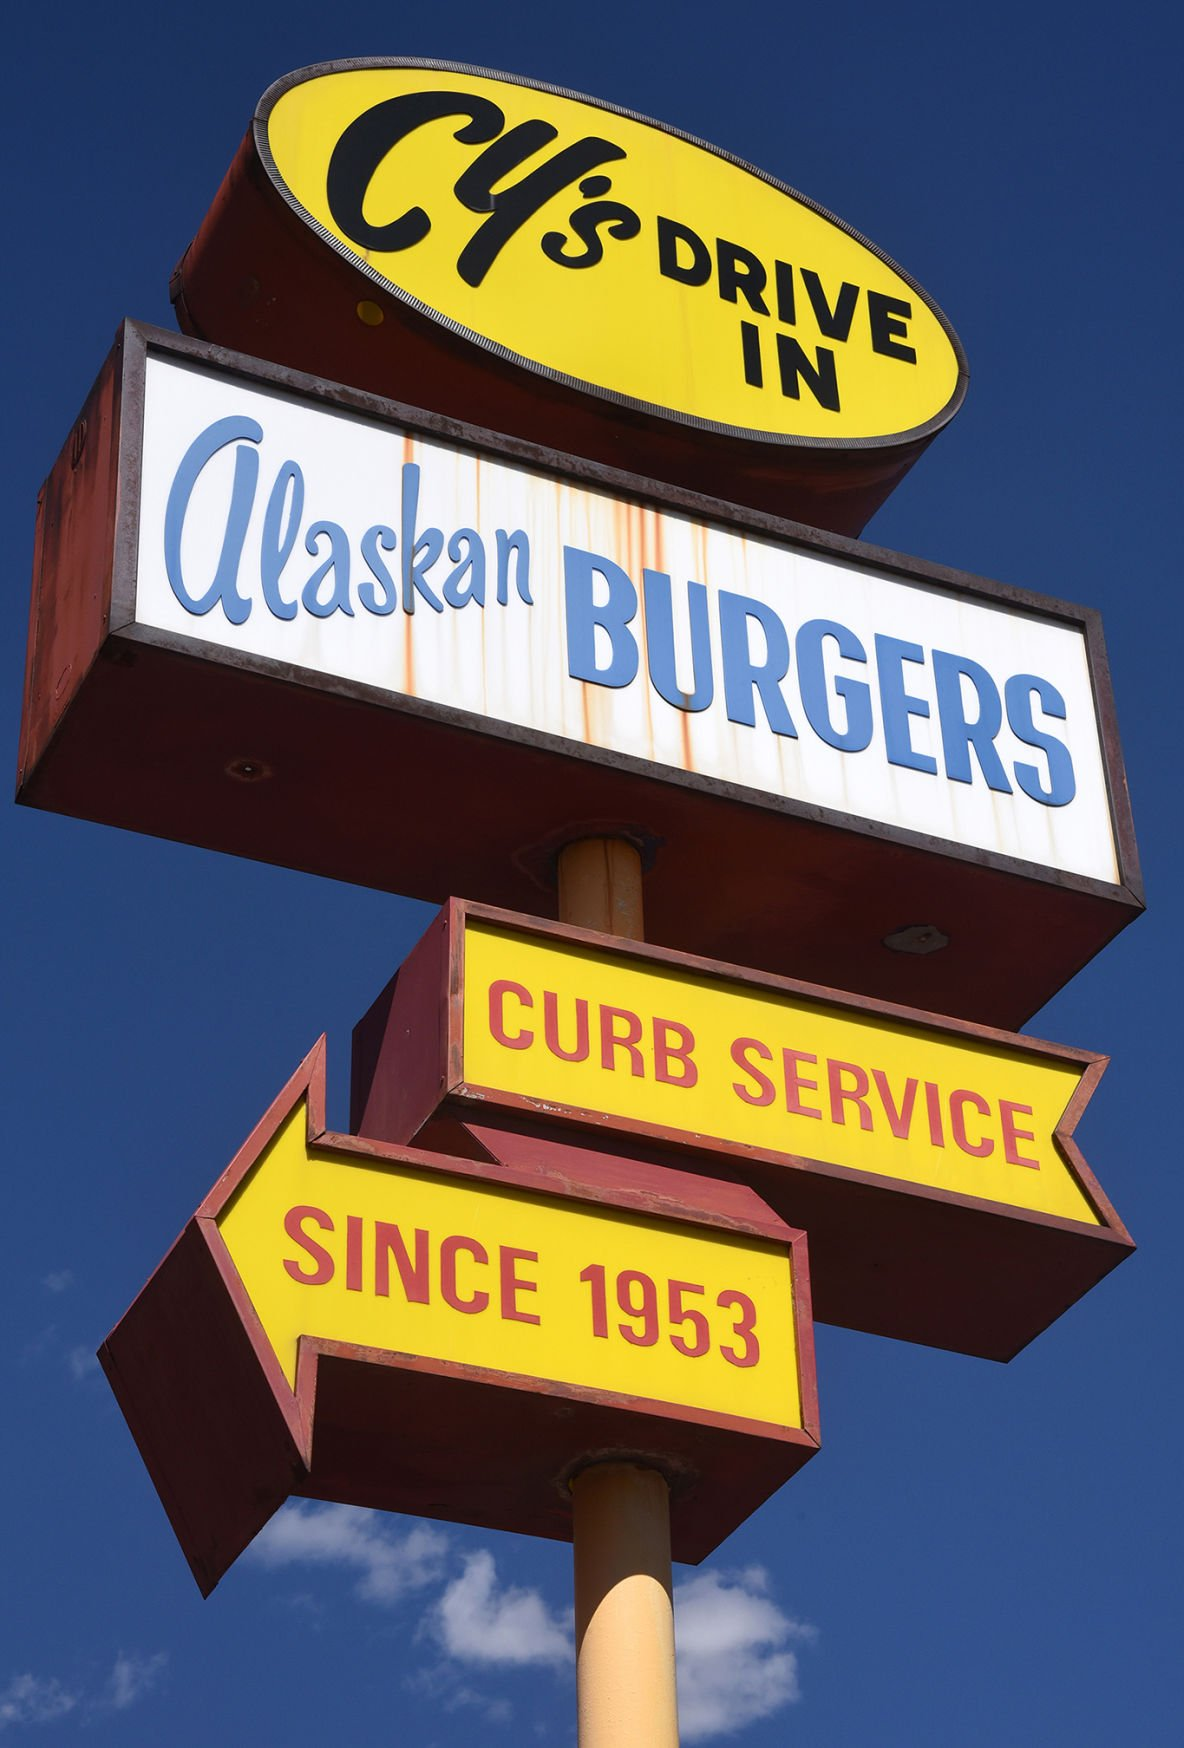 Cy's Drive-In in Colorado Springs evokes bygone days with tasty treats